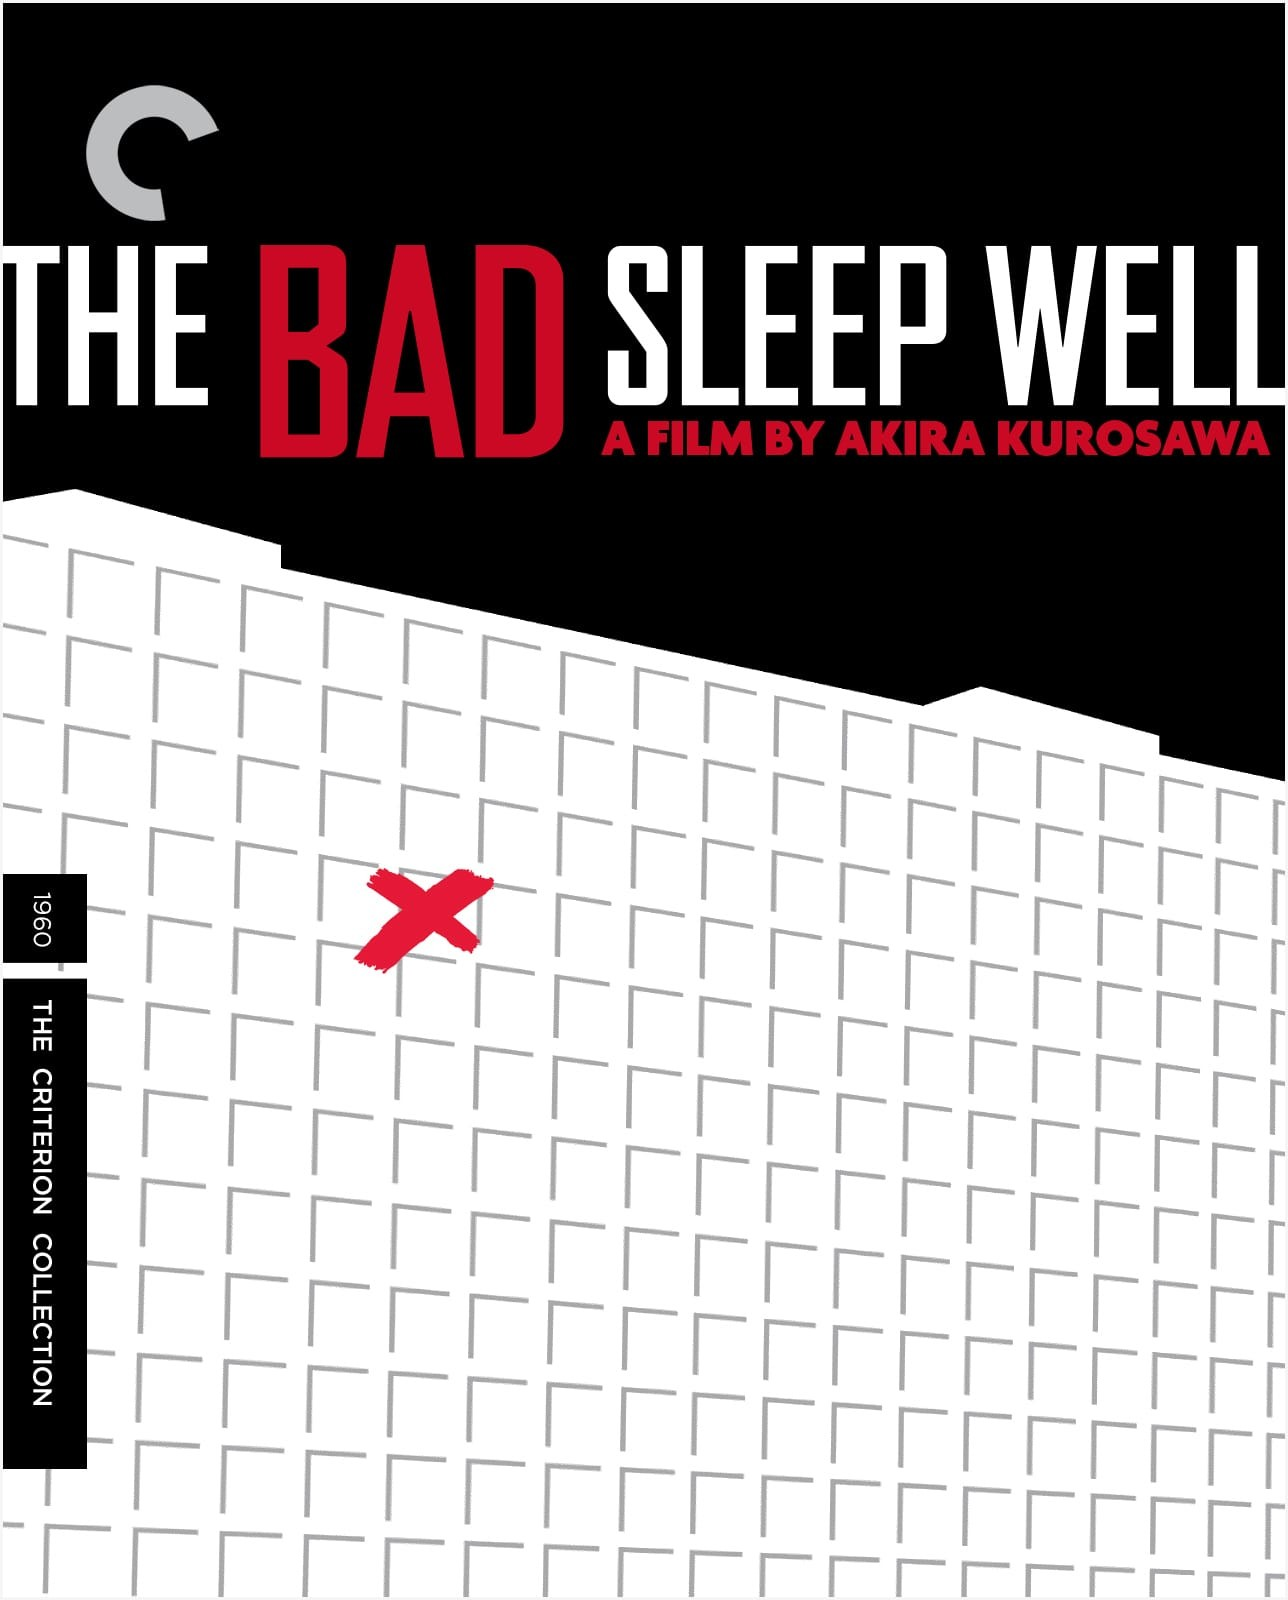 The Bad Sleep Well (1960) | The Criterion Collection